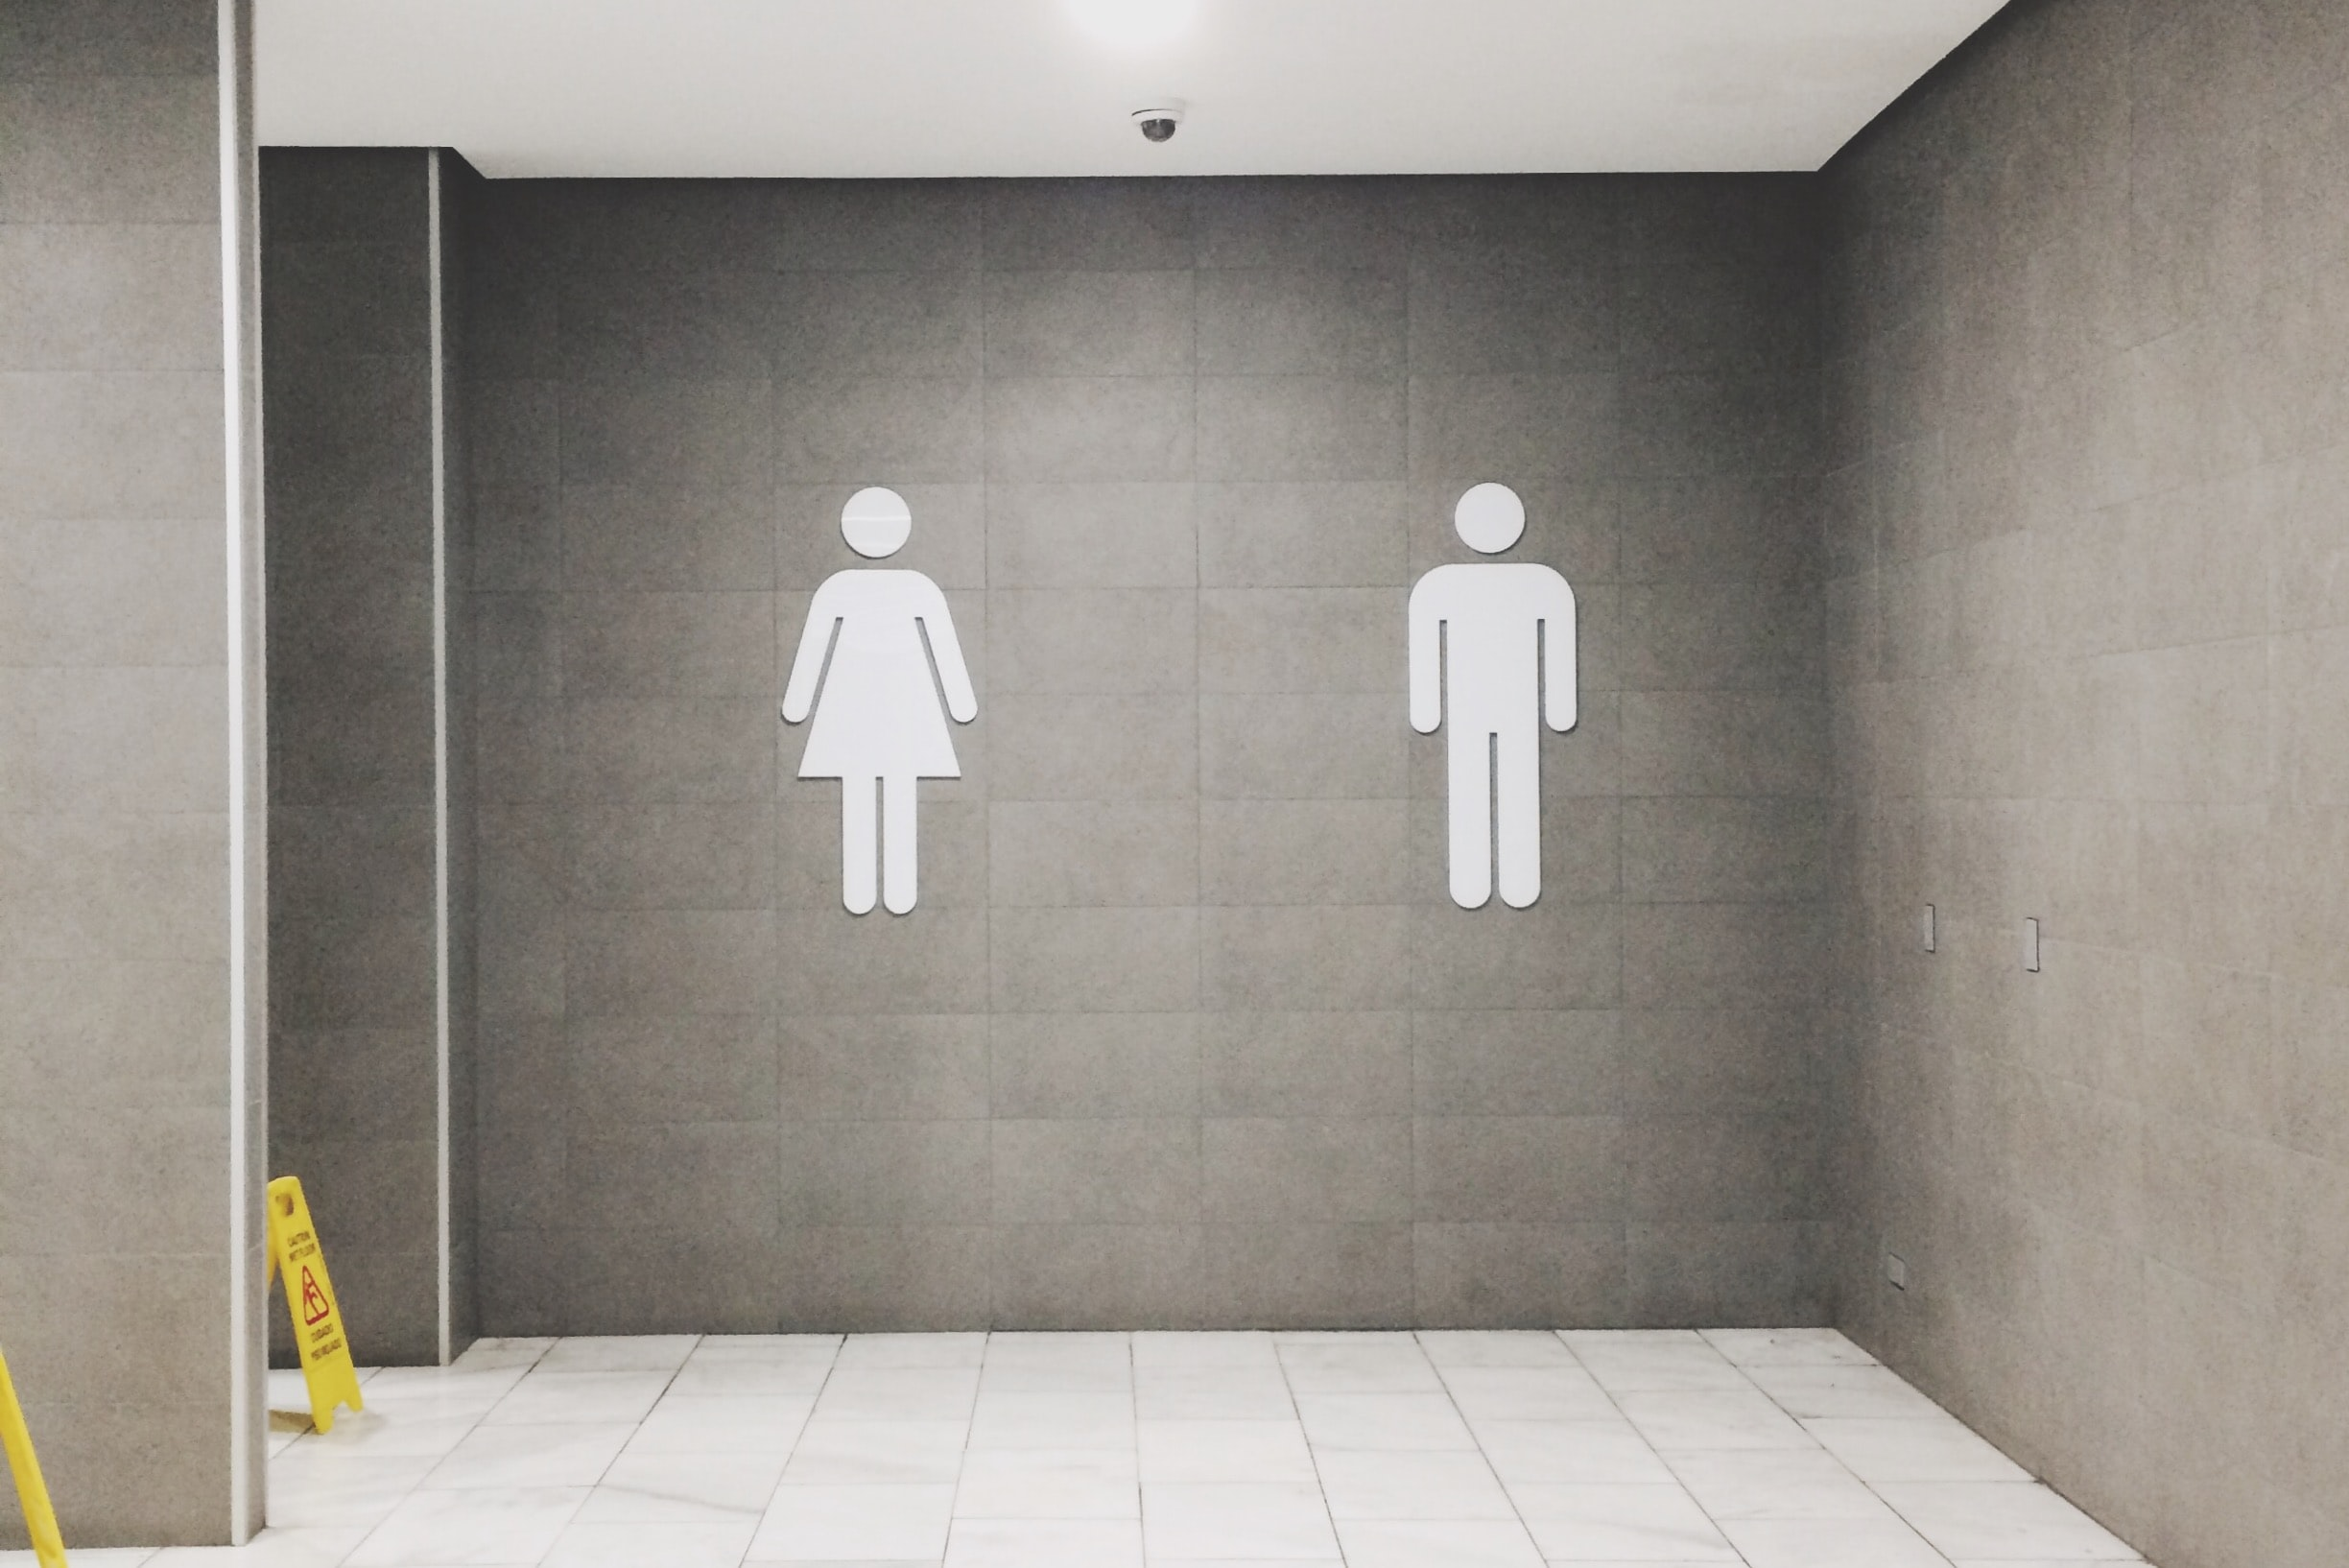 men's and women's bathroom signs